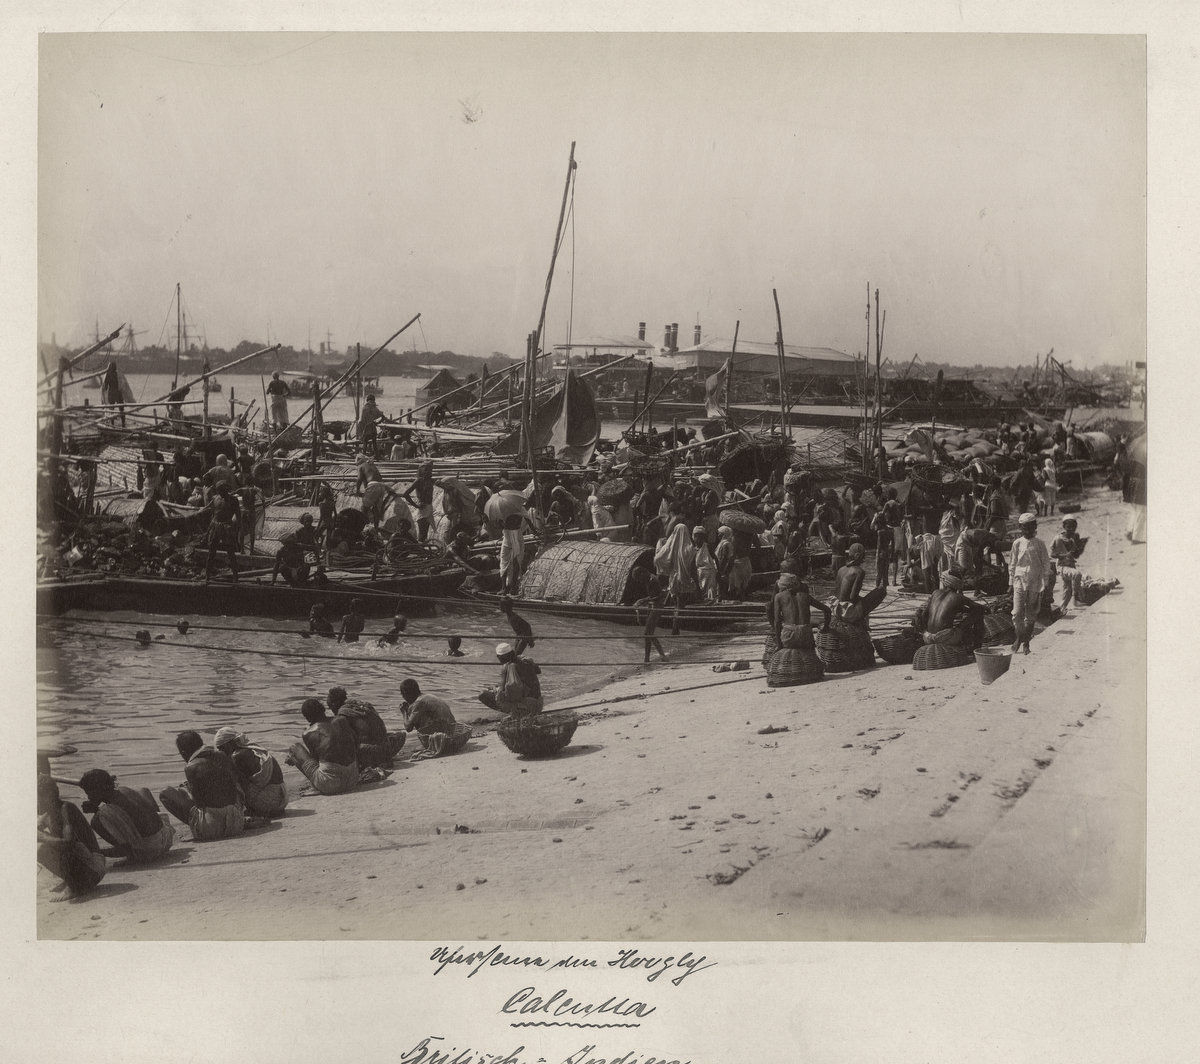 Boats on the Hooghly River - Calcutta (Kolkata) c1880's